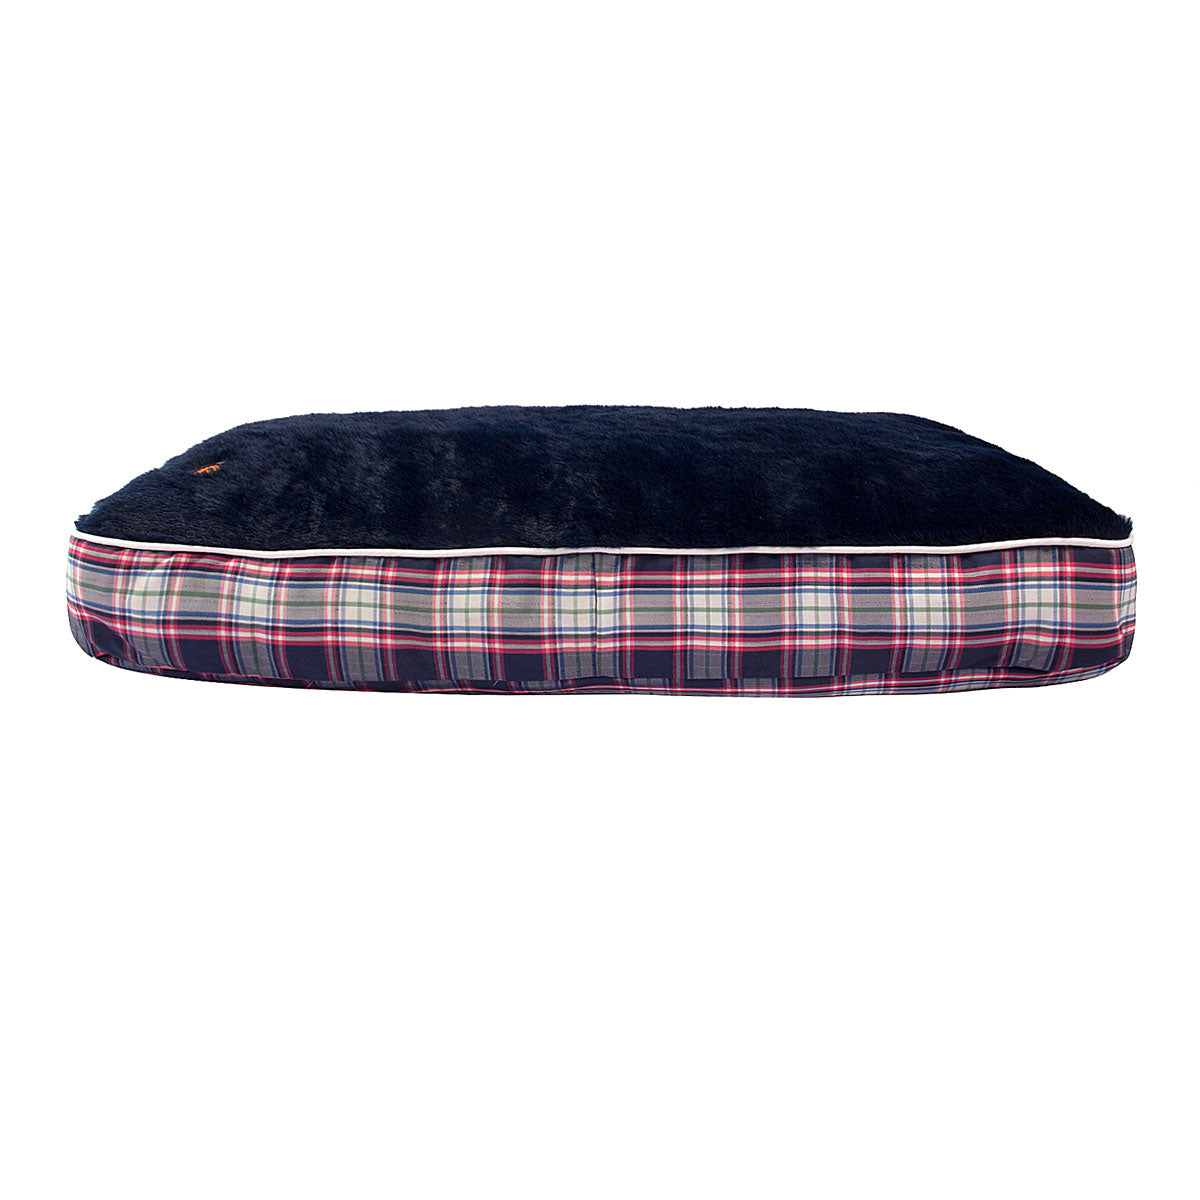 Halo Amber Plaid Rectangular Dog Bed - Halo - Breeches.com